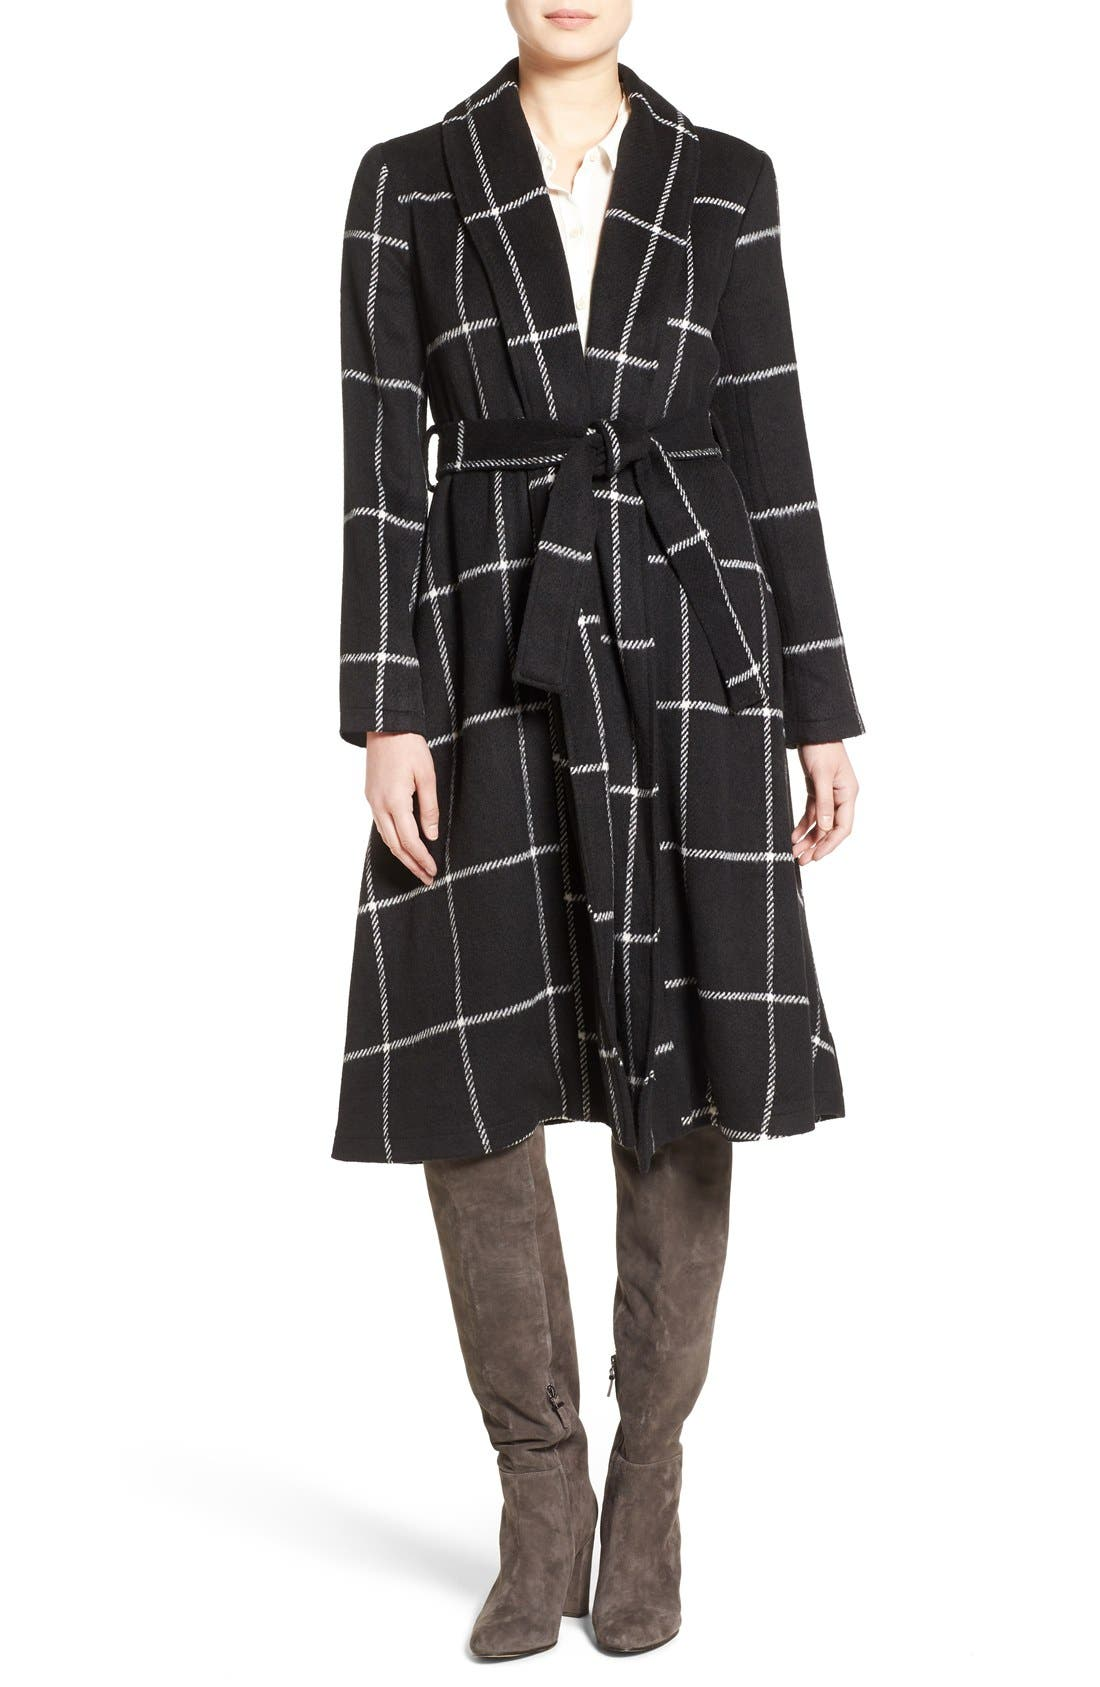 Alternate Image 1 Selected - BB Dakota 'Braylee' Windowpane Plaid Midi Coat